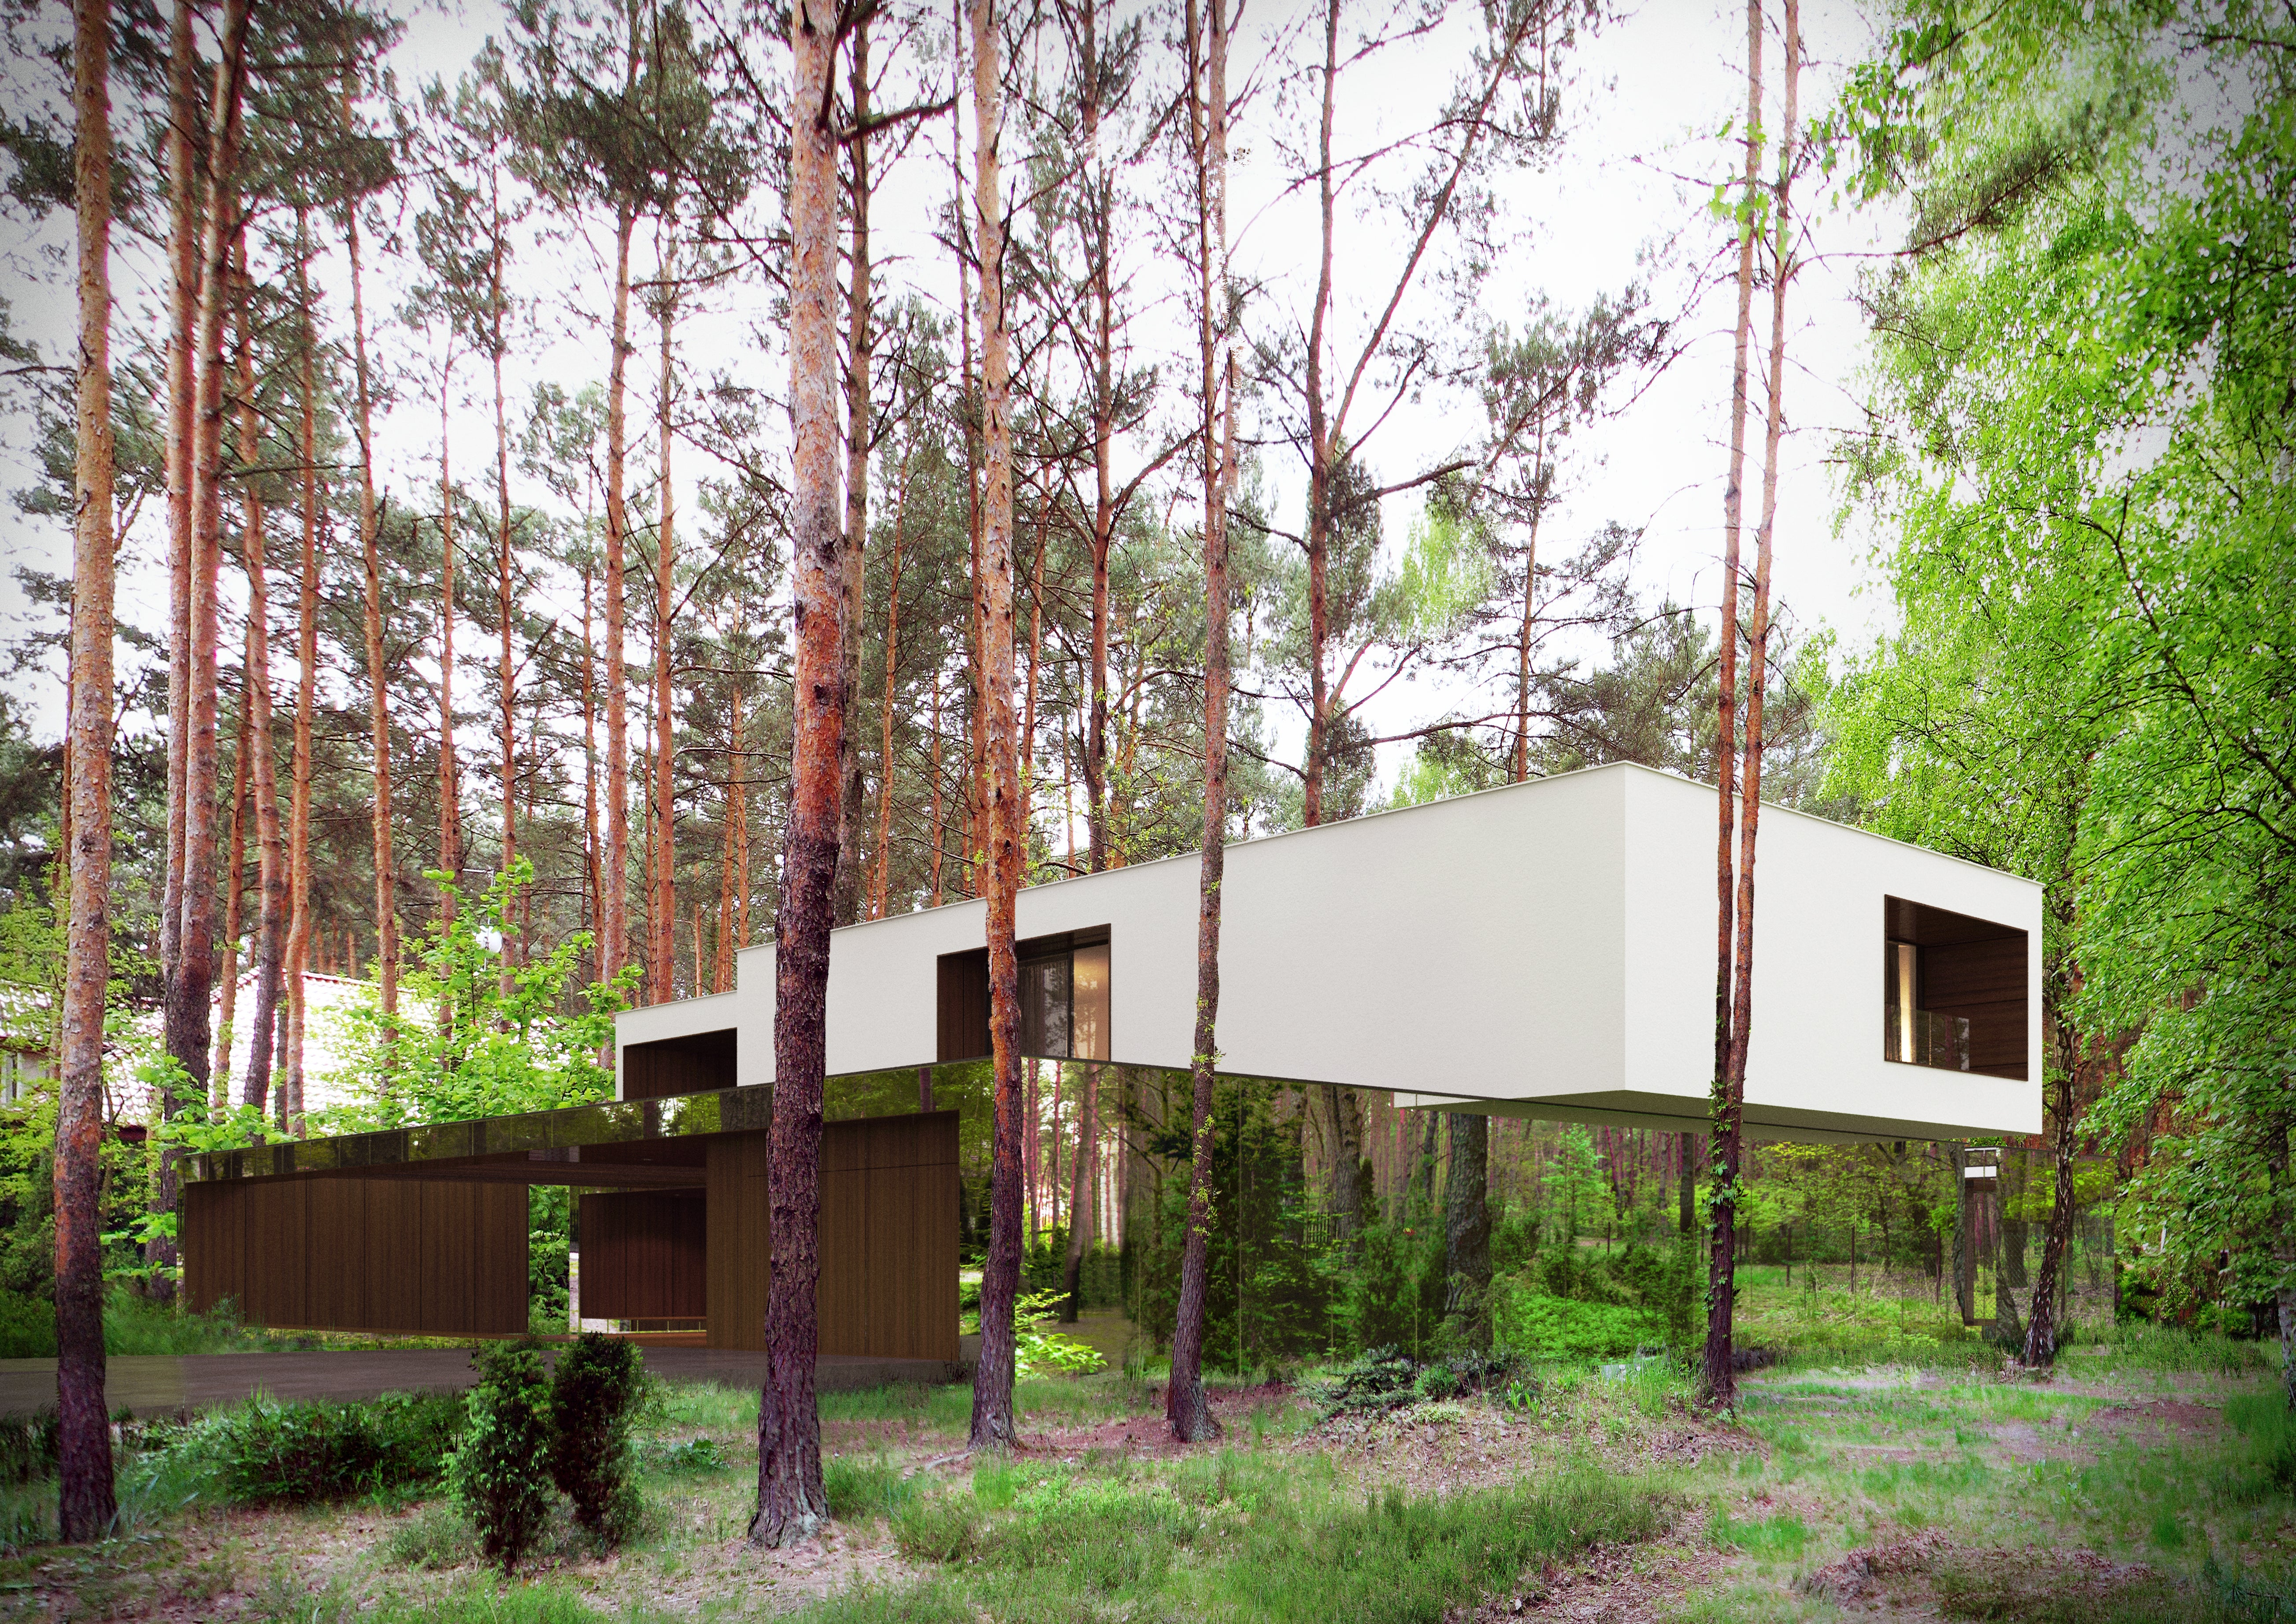 This Mirror House Vanishes Into the Forest